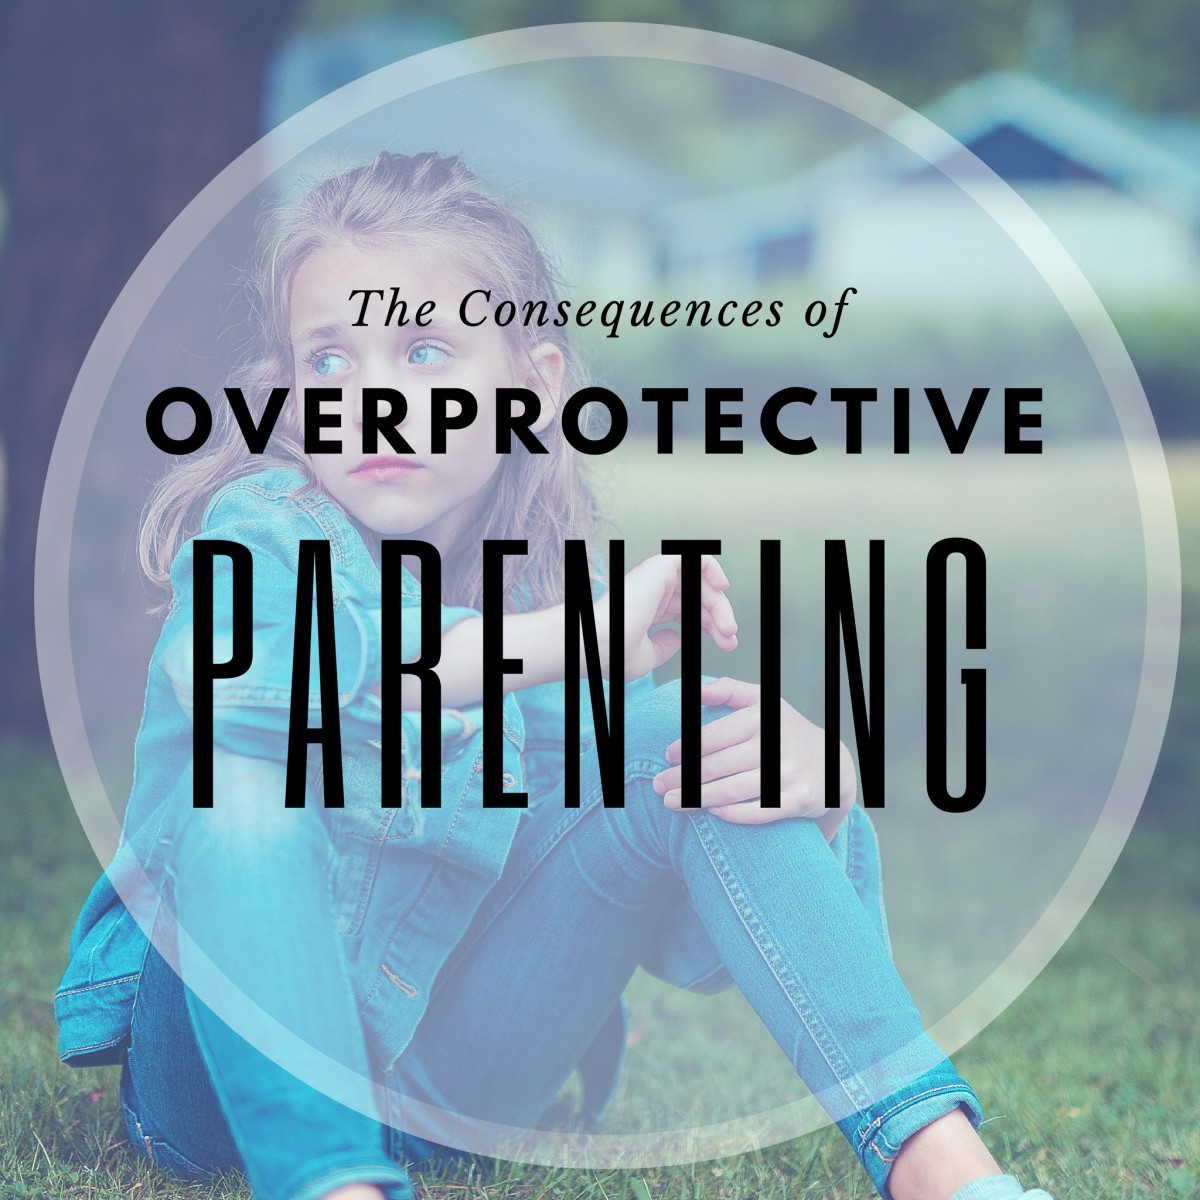 Overprotective parents are only doing a disservice by sheltering their children from life. They are preventing their children from exploring and enjoying the normal things of childhood.